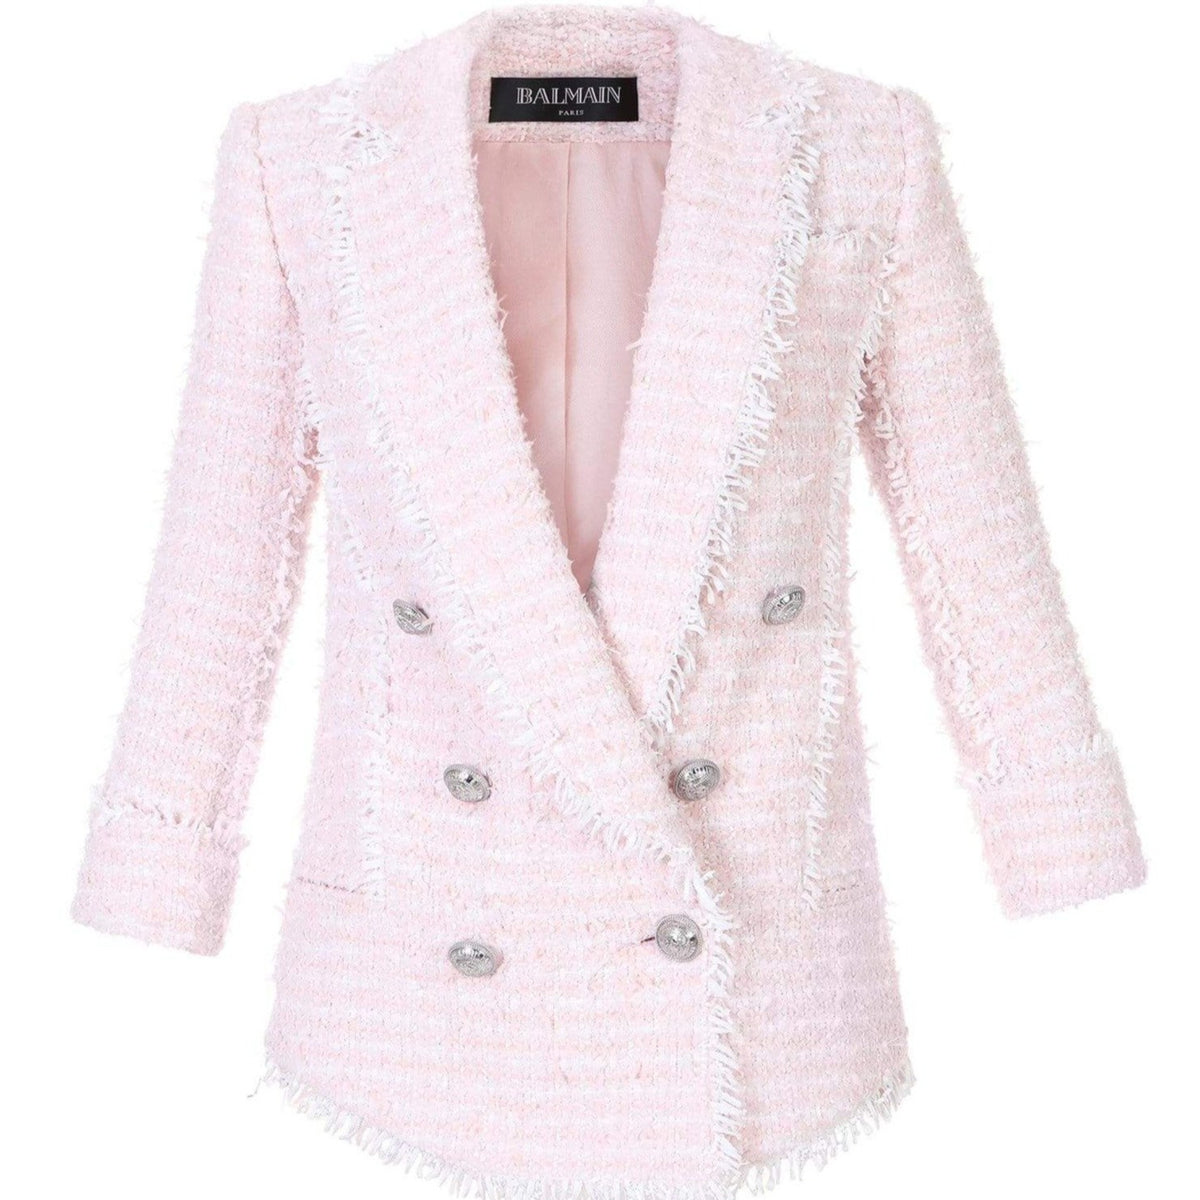 Balmain Ladies Pink Tweed Pyjama Style Blazer